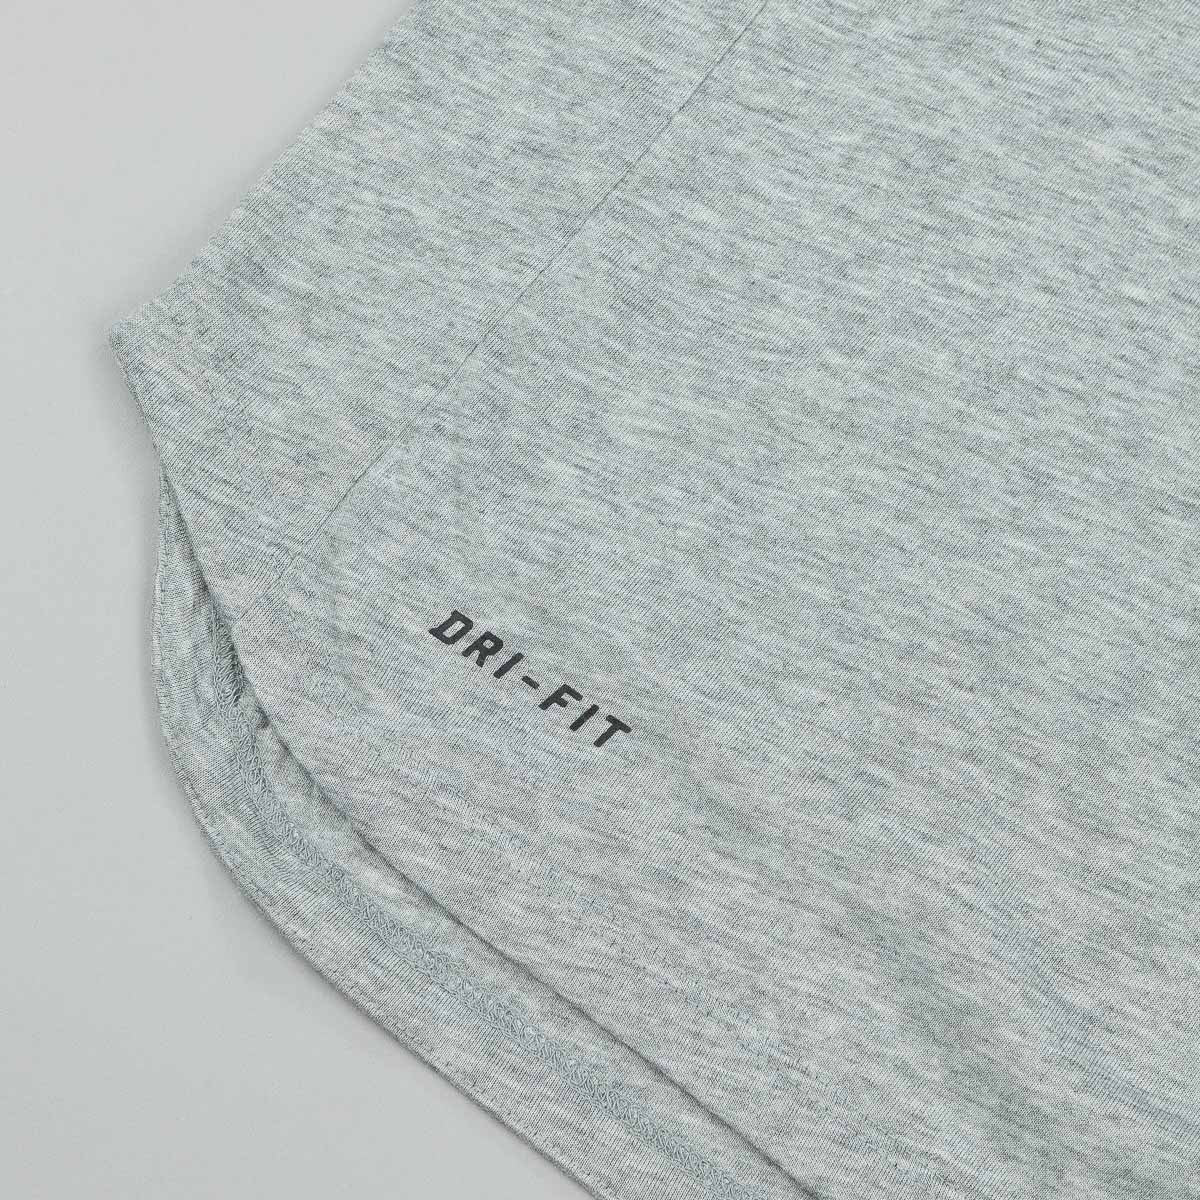 Nike SB Dri-Fit Skyline Cool T-Shirt - Dark Grey Heather / Reflective